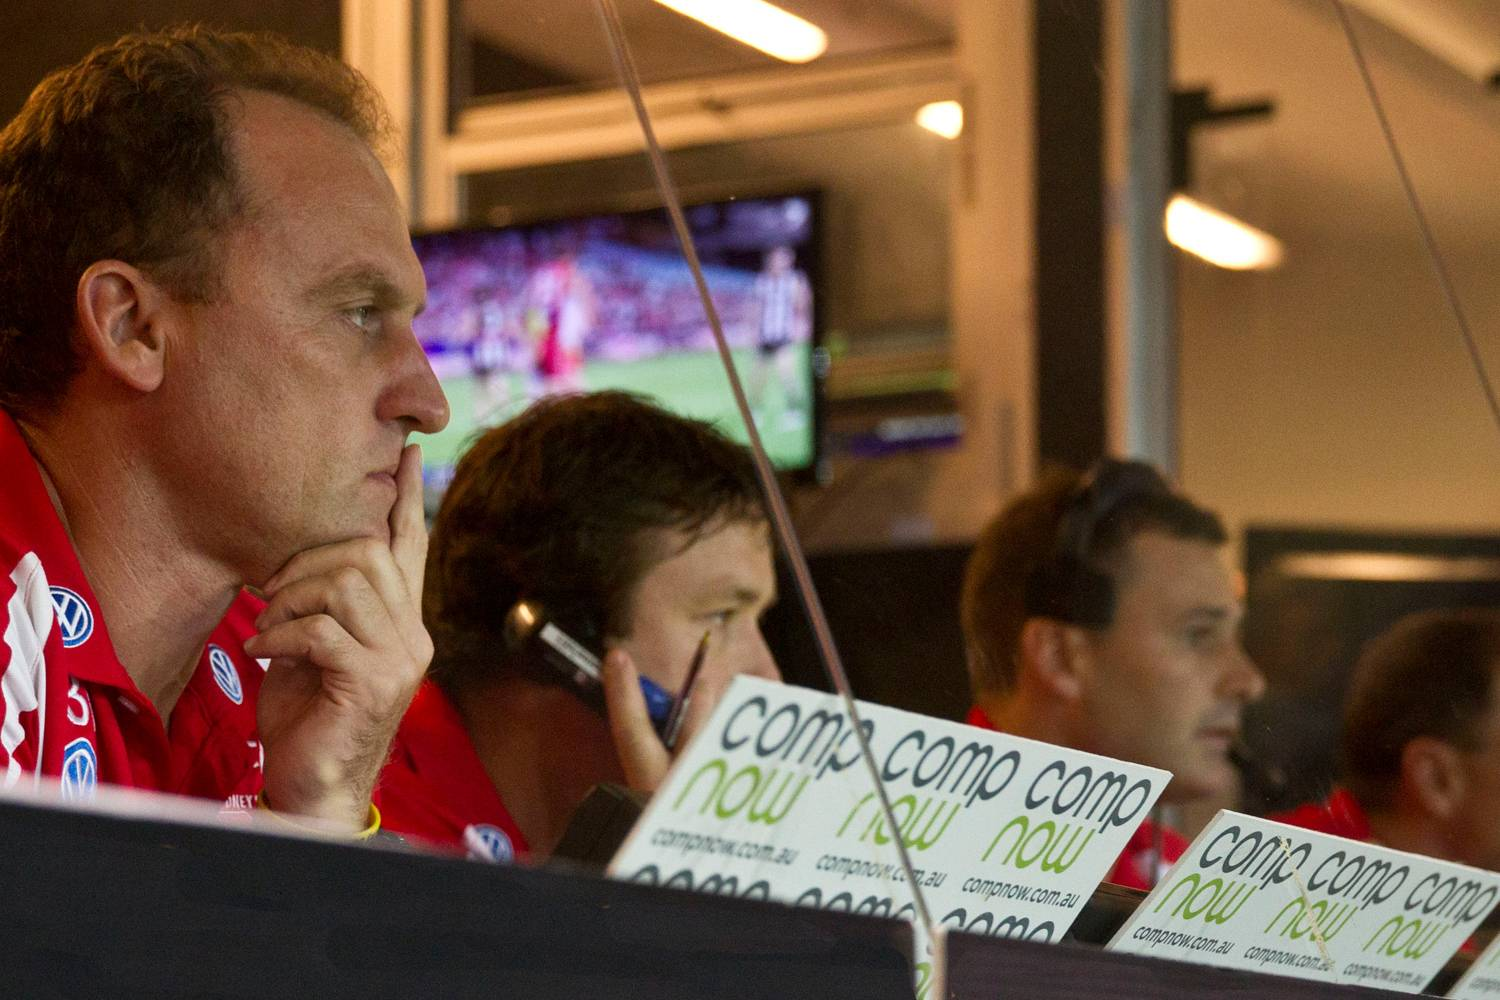 Sydney Swans boosts performance with help from CompNow